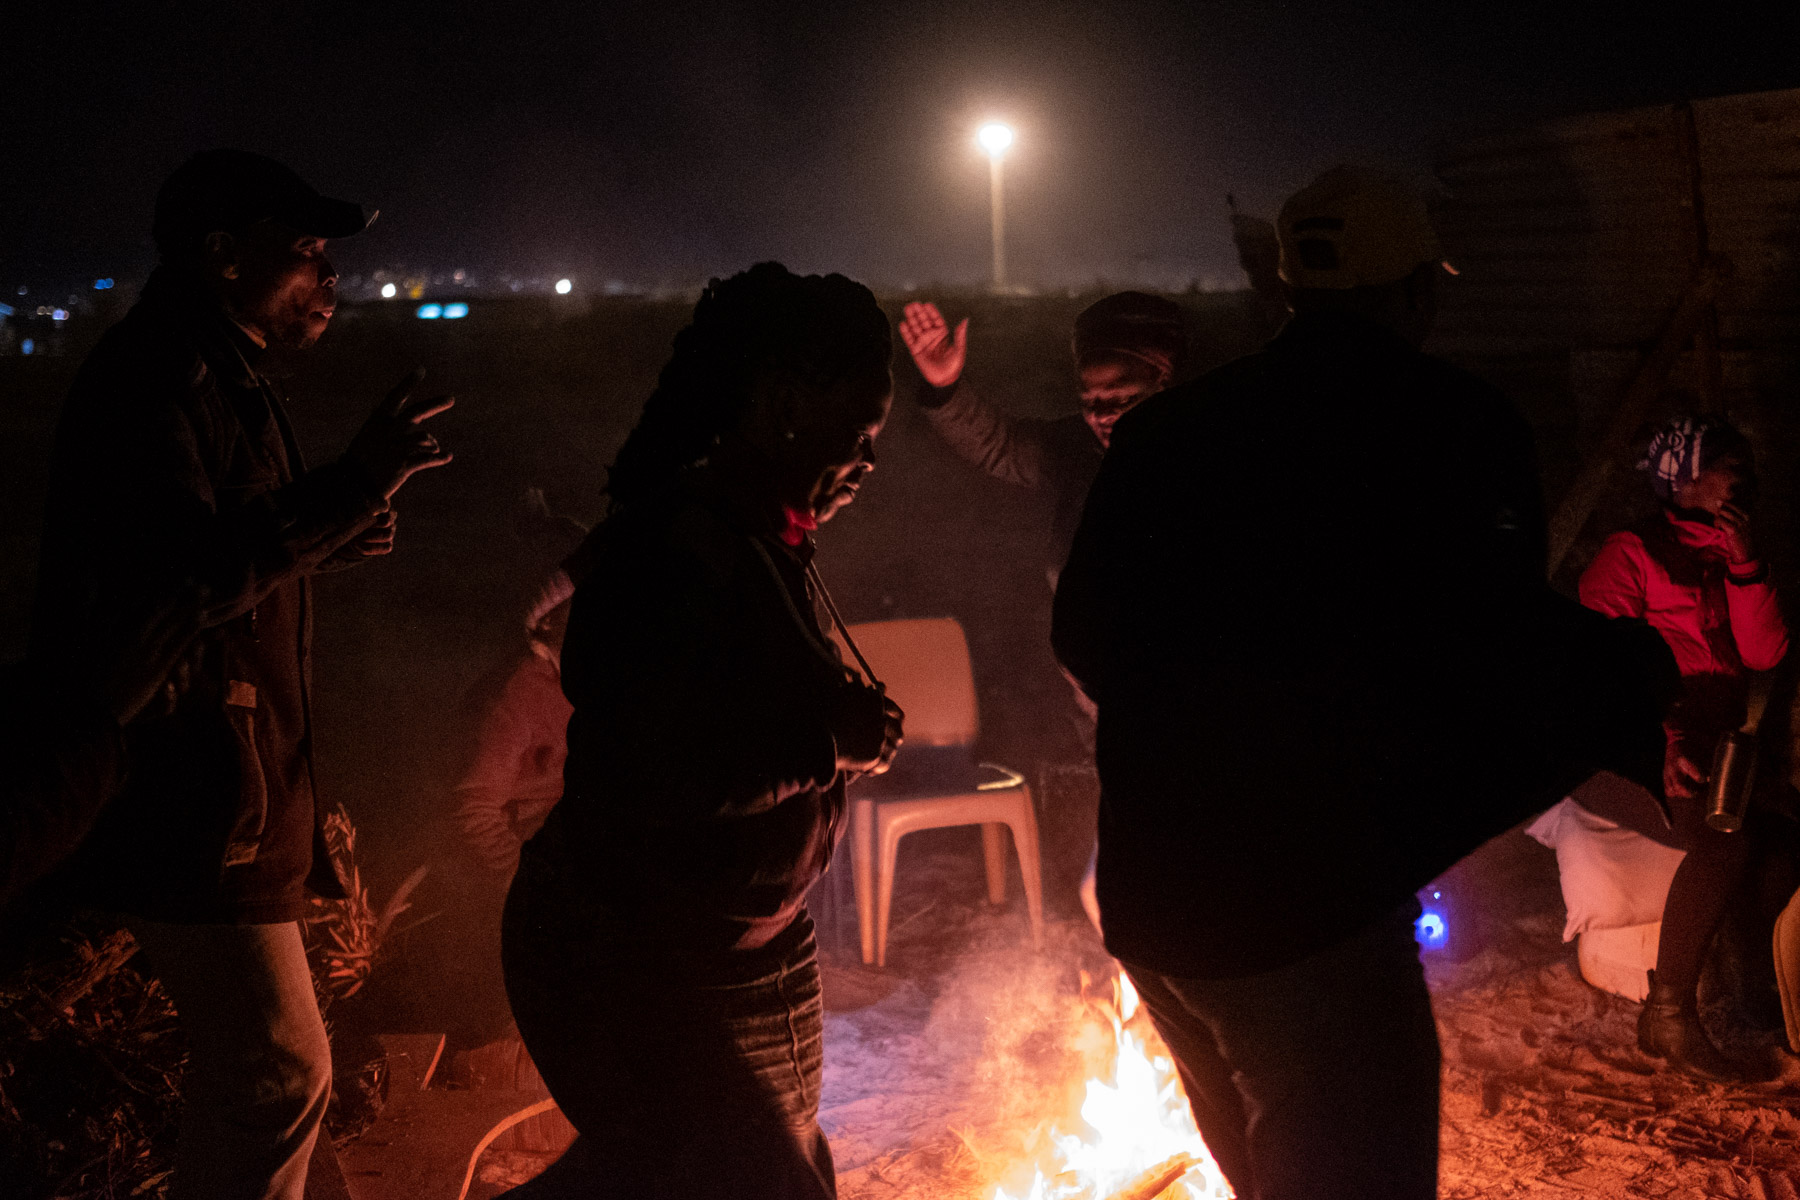 16 April 2020: Residents make the most of the evening and dance to maskandi music as they prepare for another night of sleeping outside.